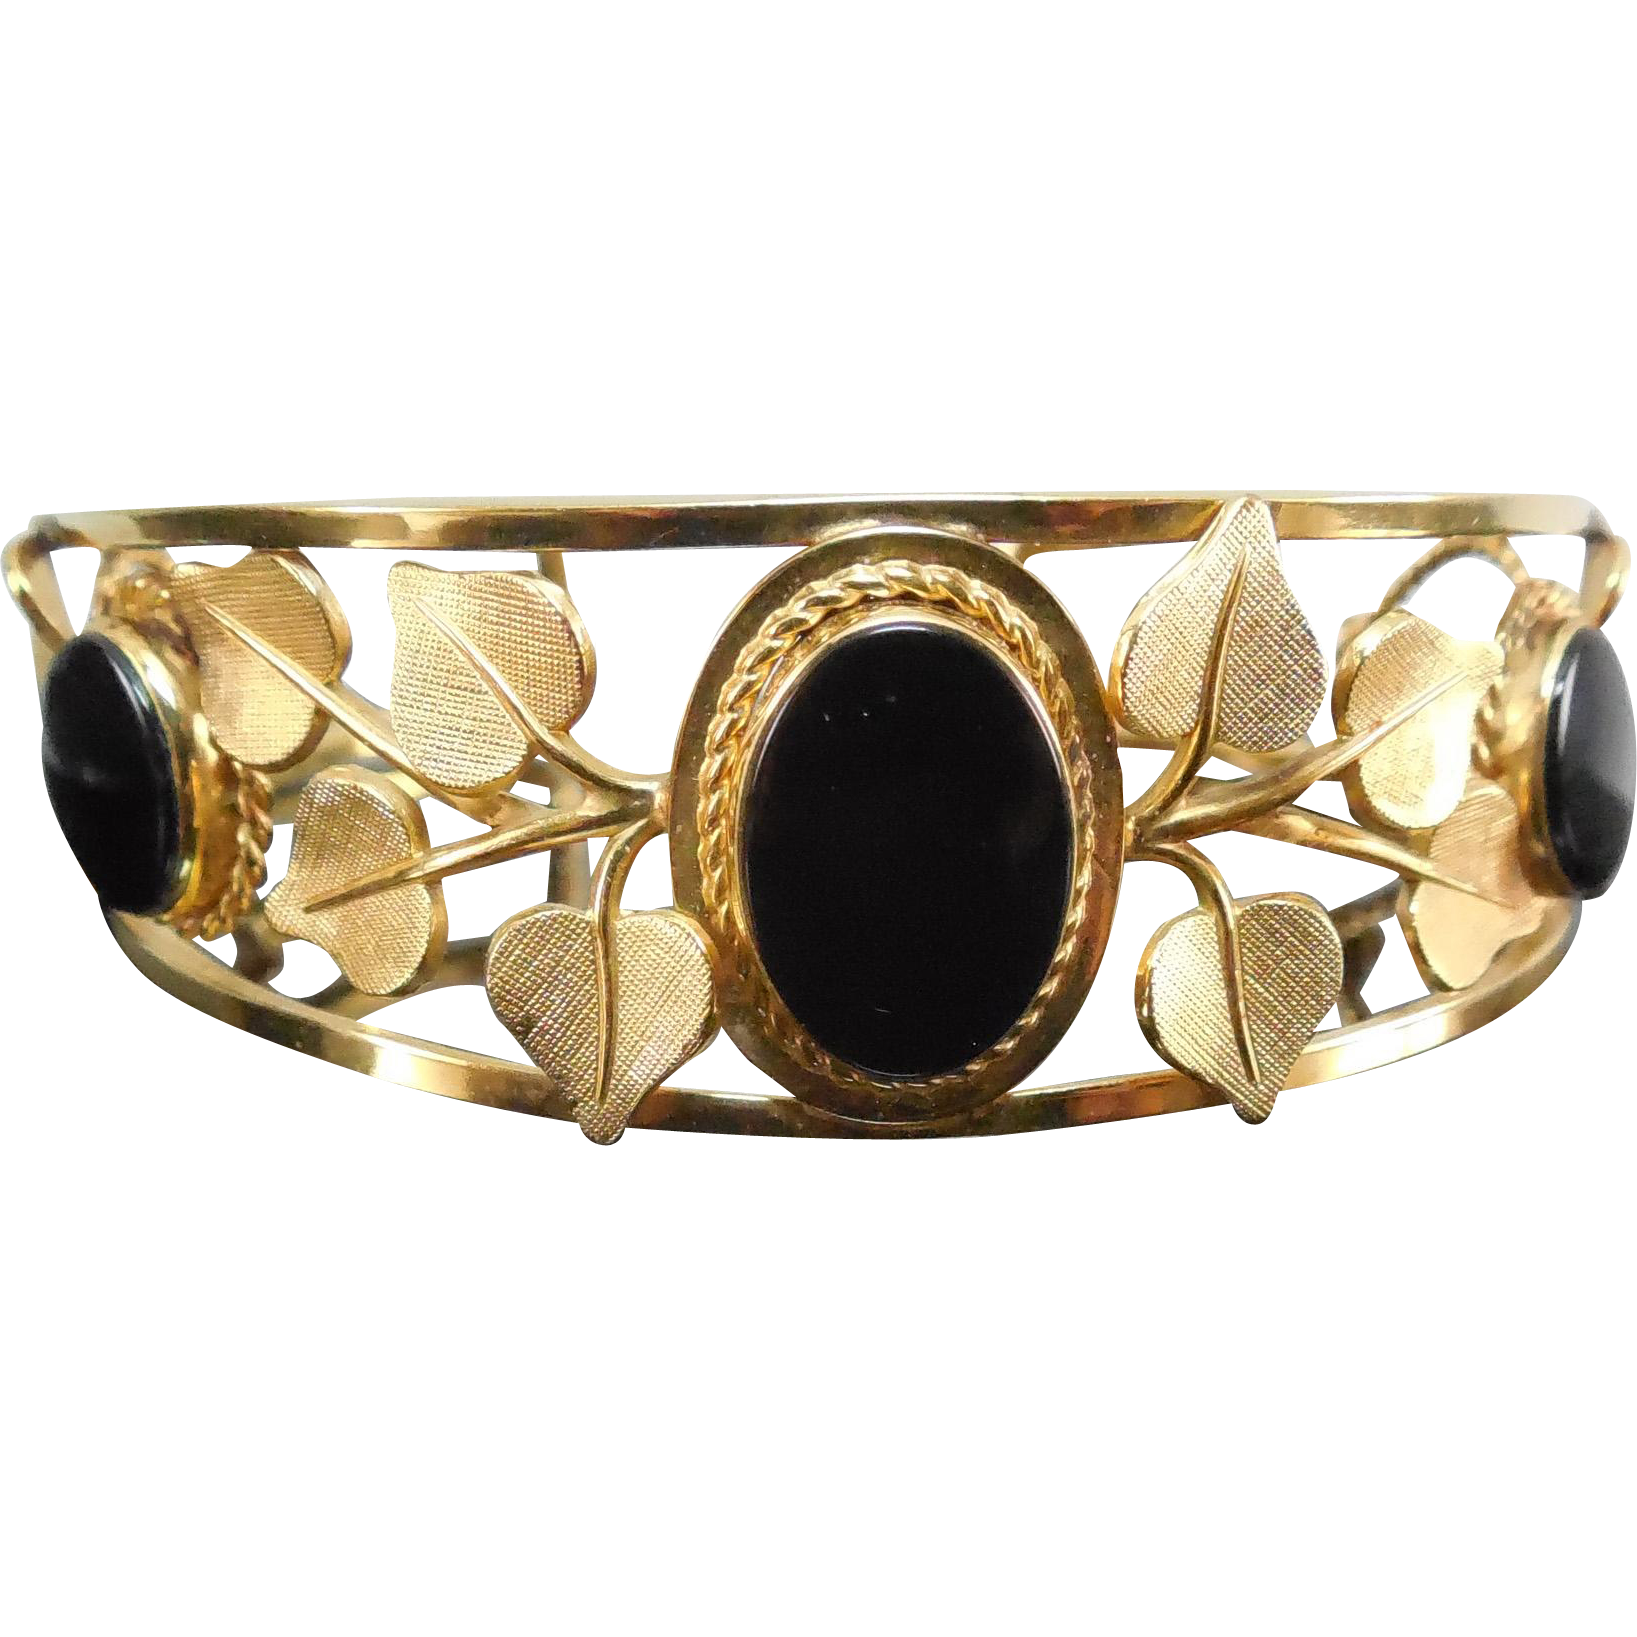 Vintage Gold Filled Cuff Bracelet Decorated With Leaves & Black Oval Stones